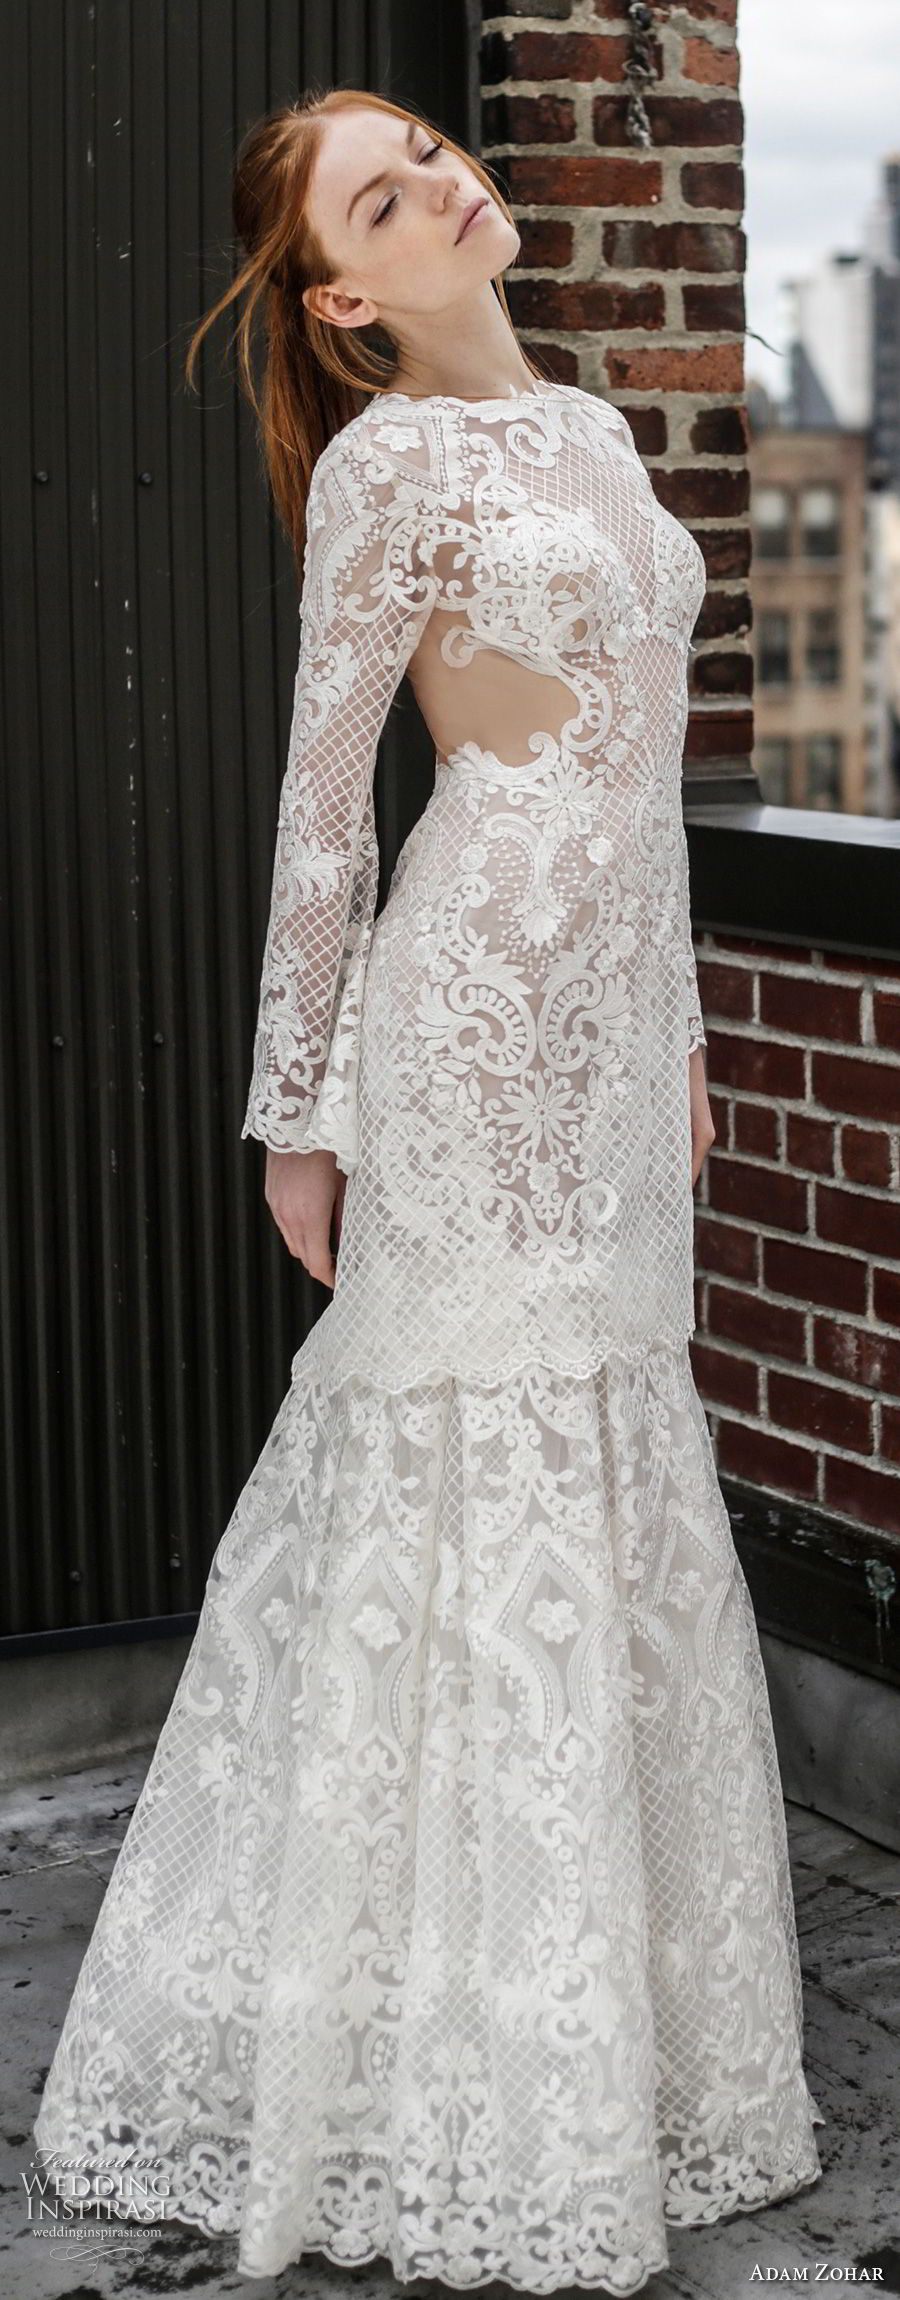 adam zohar 2017 bridal long sleeves jewel neck full embellishment elegant trumpet wedding dress keyhole back sweep train (6) mv